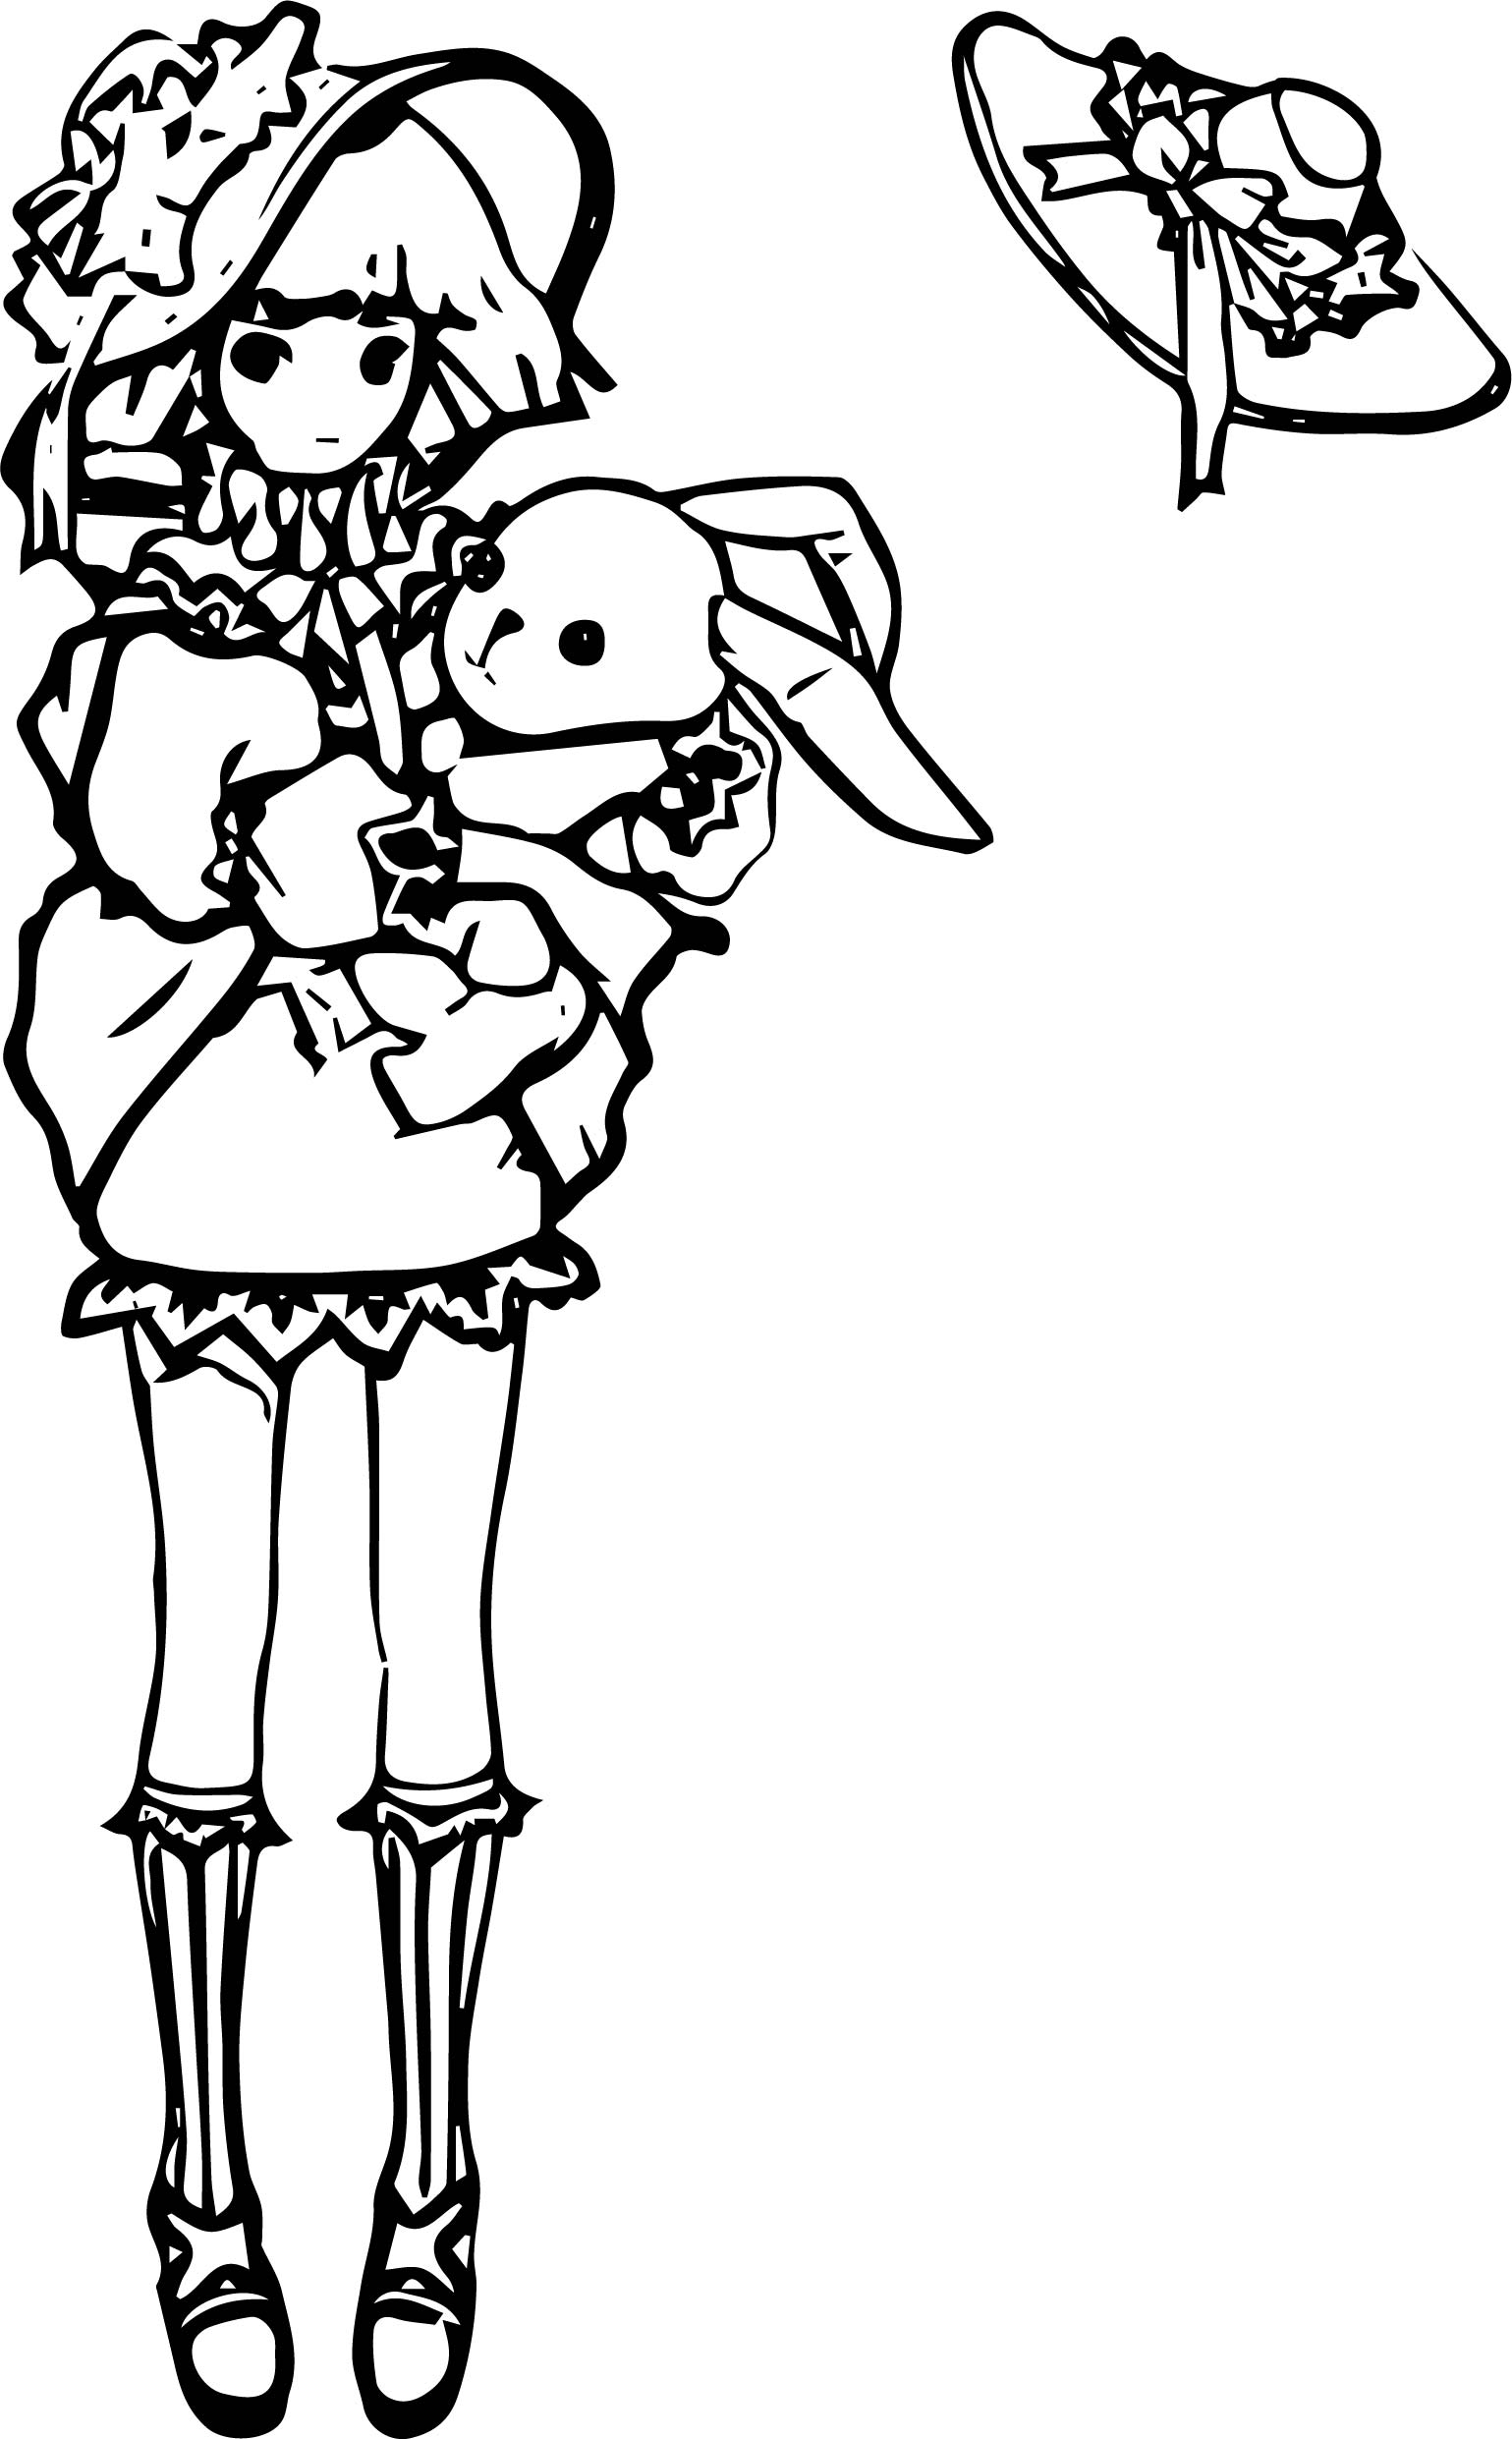 Lime Odyssey The Chronicles Character Coloring Page